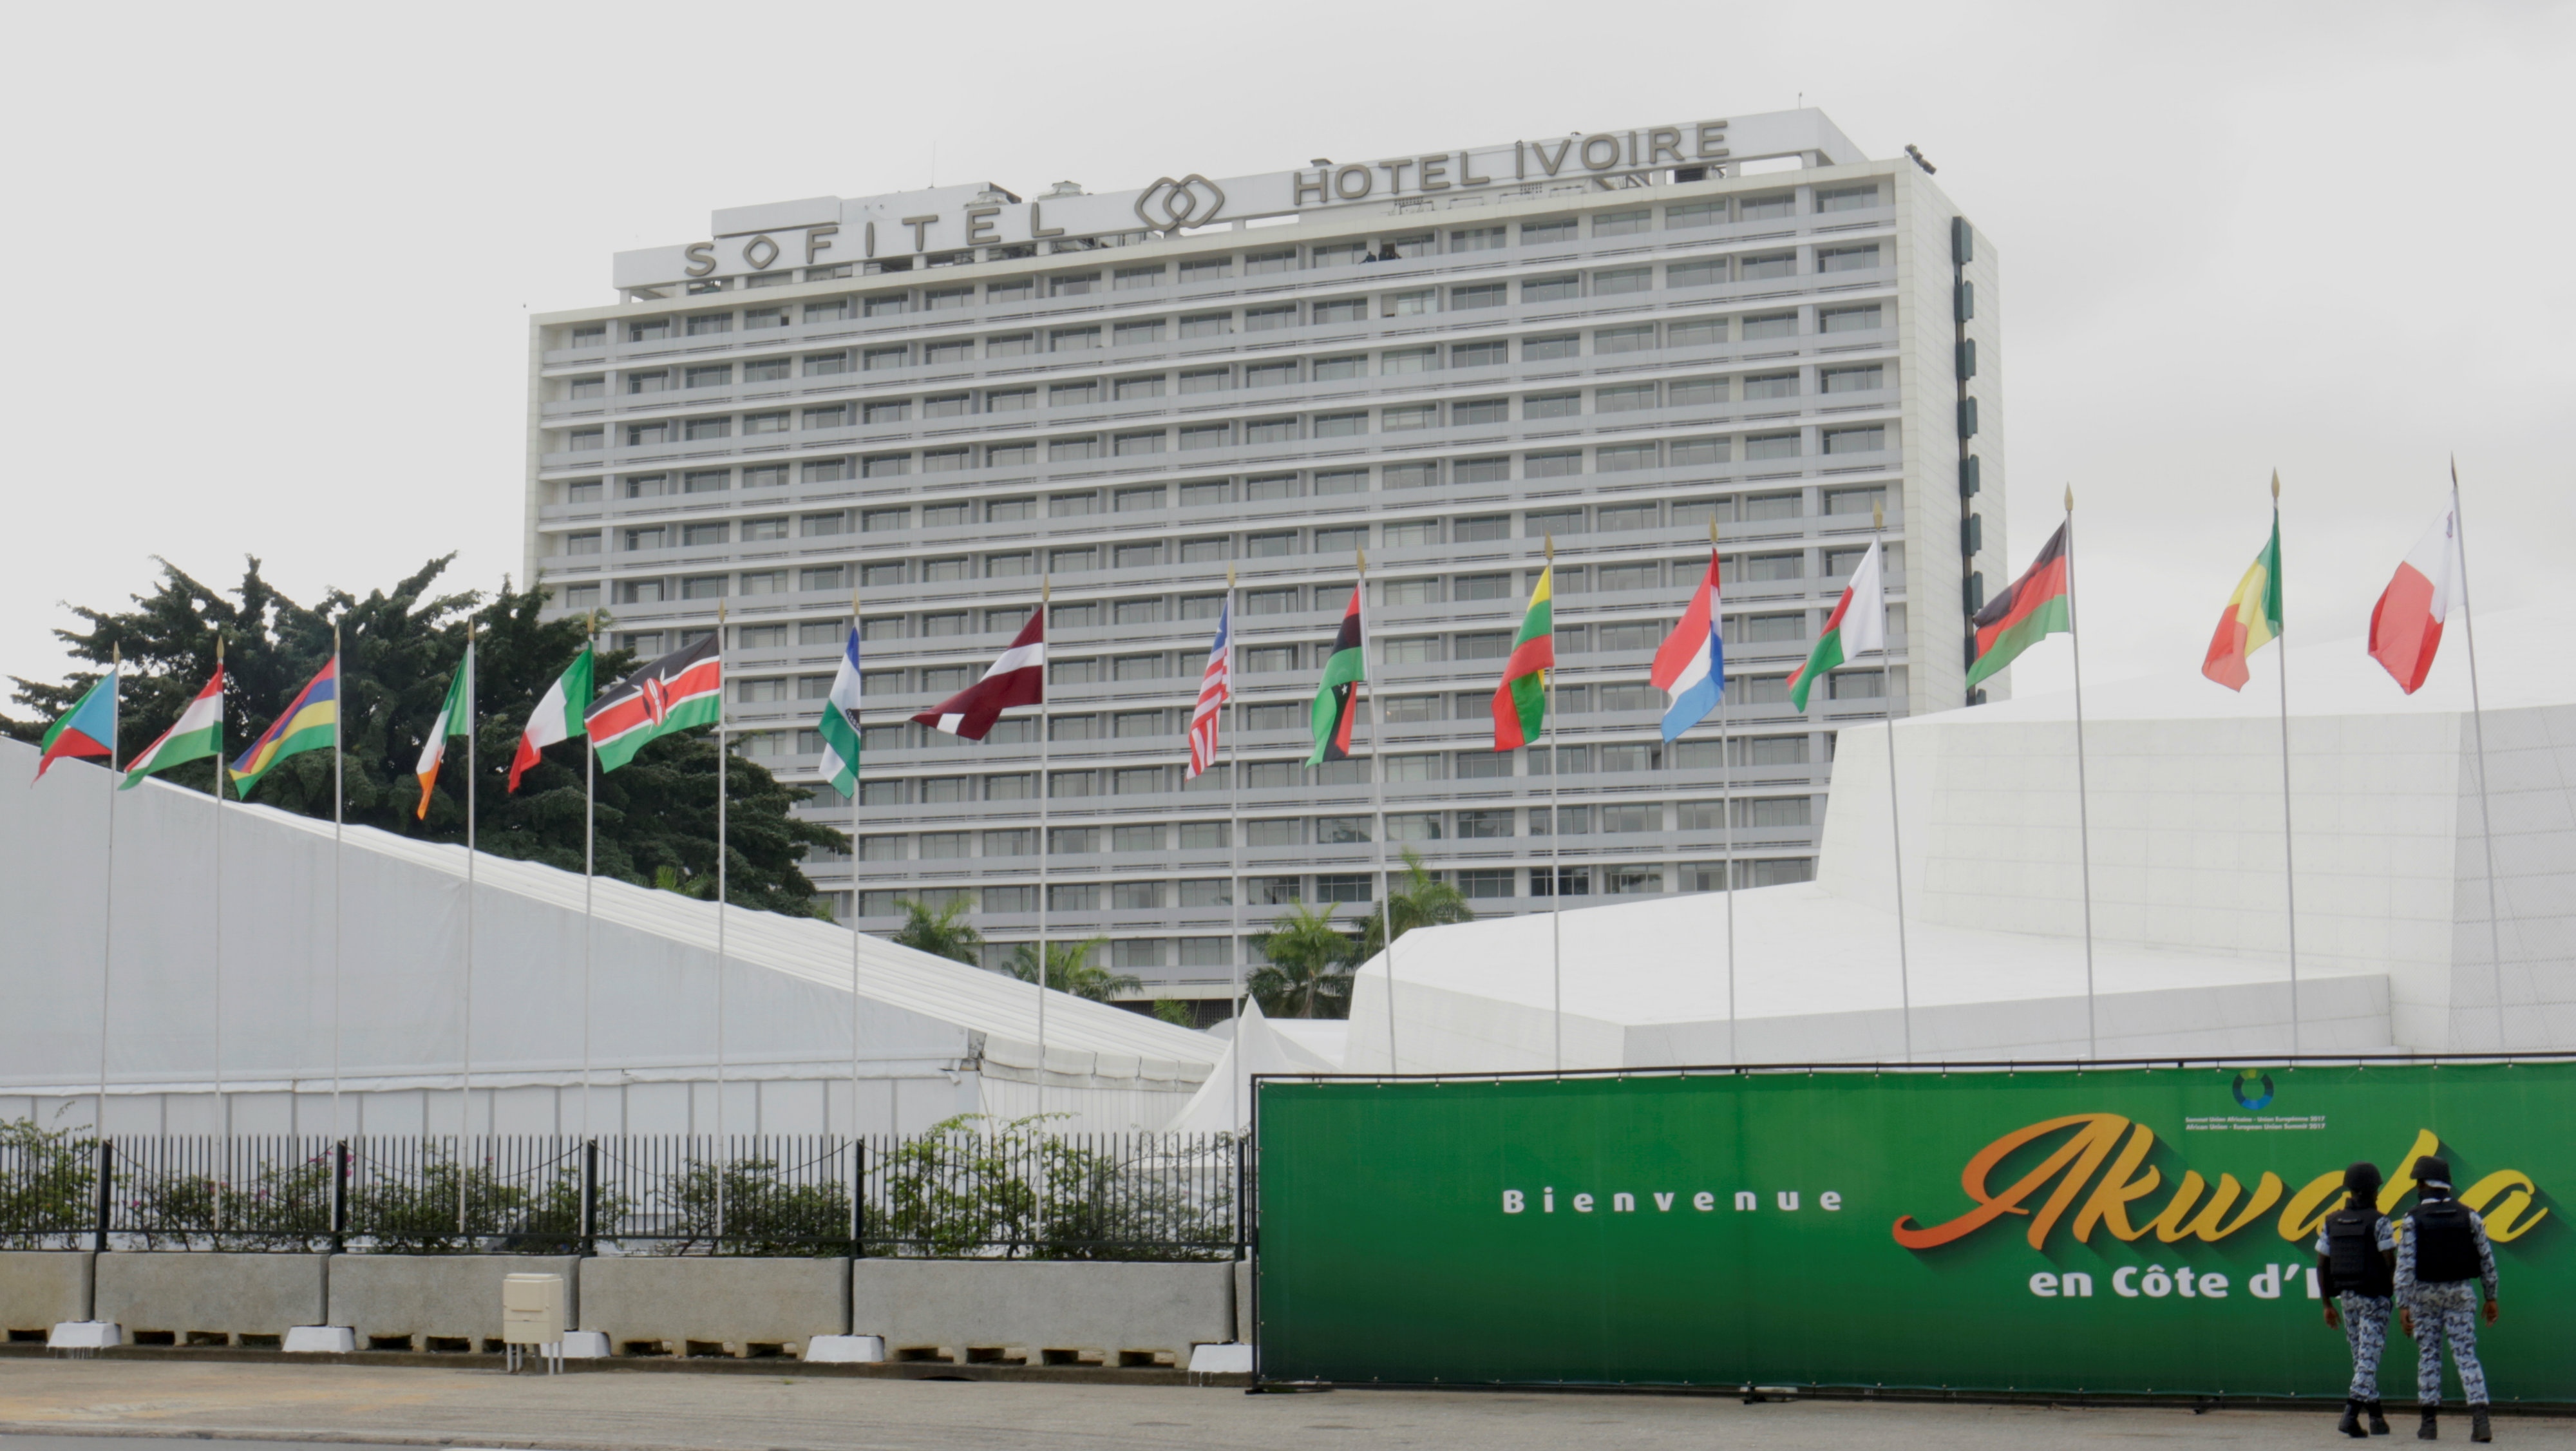 The Sofitel Abidjan Hotel Ivoire, where the 5th African Union - European Union (AU-EU) summit will take place, is pictured in Abidjan, Ivory Coast November 30, 2017